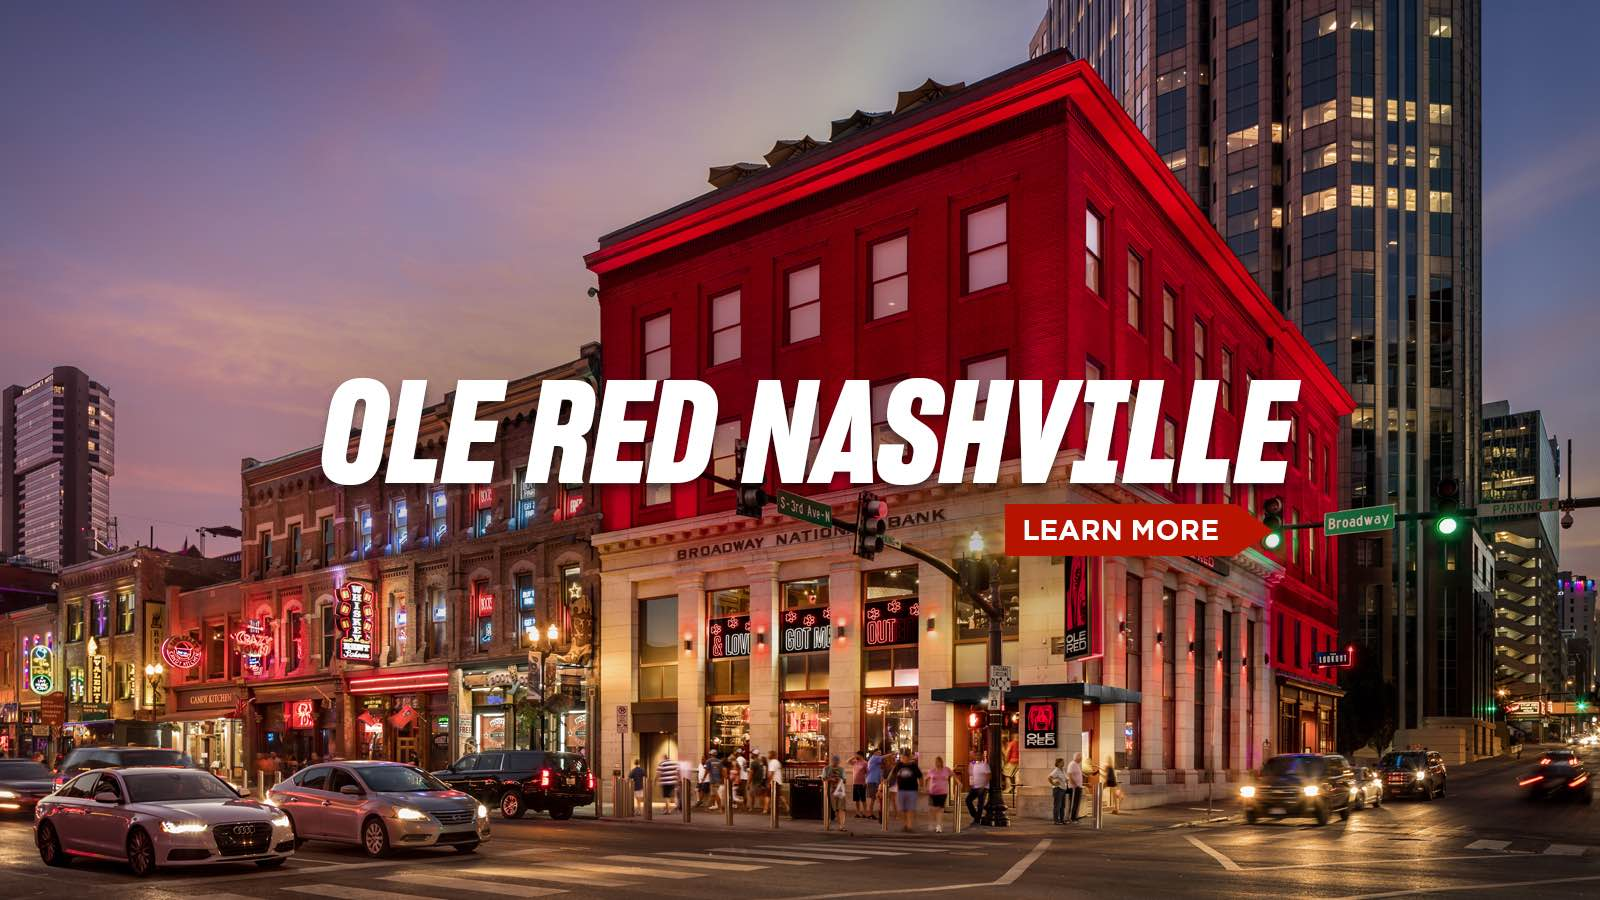 Ole Red Nashville - Learn More